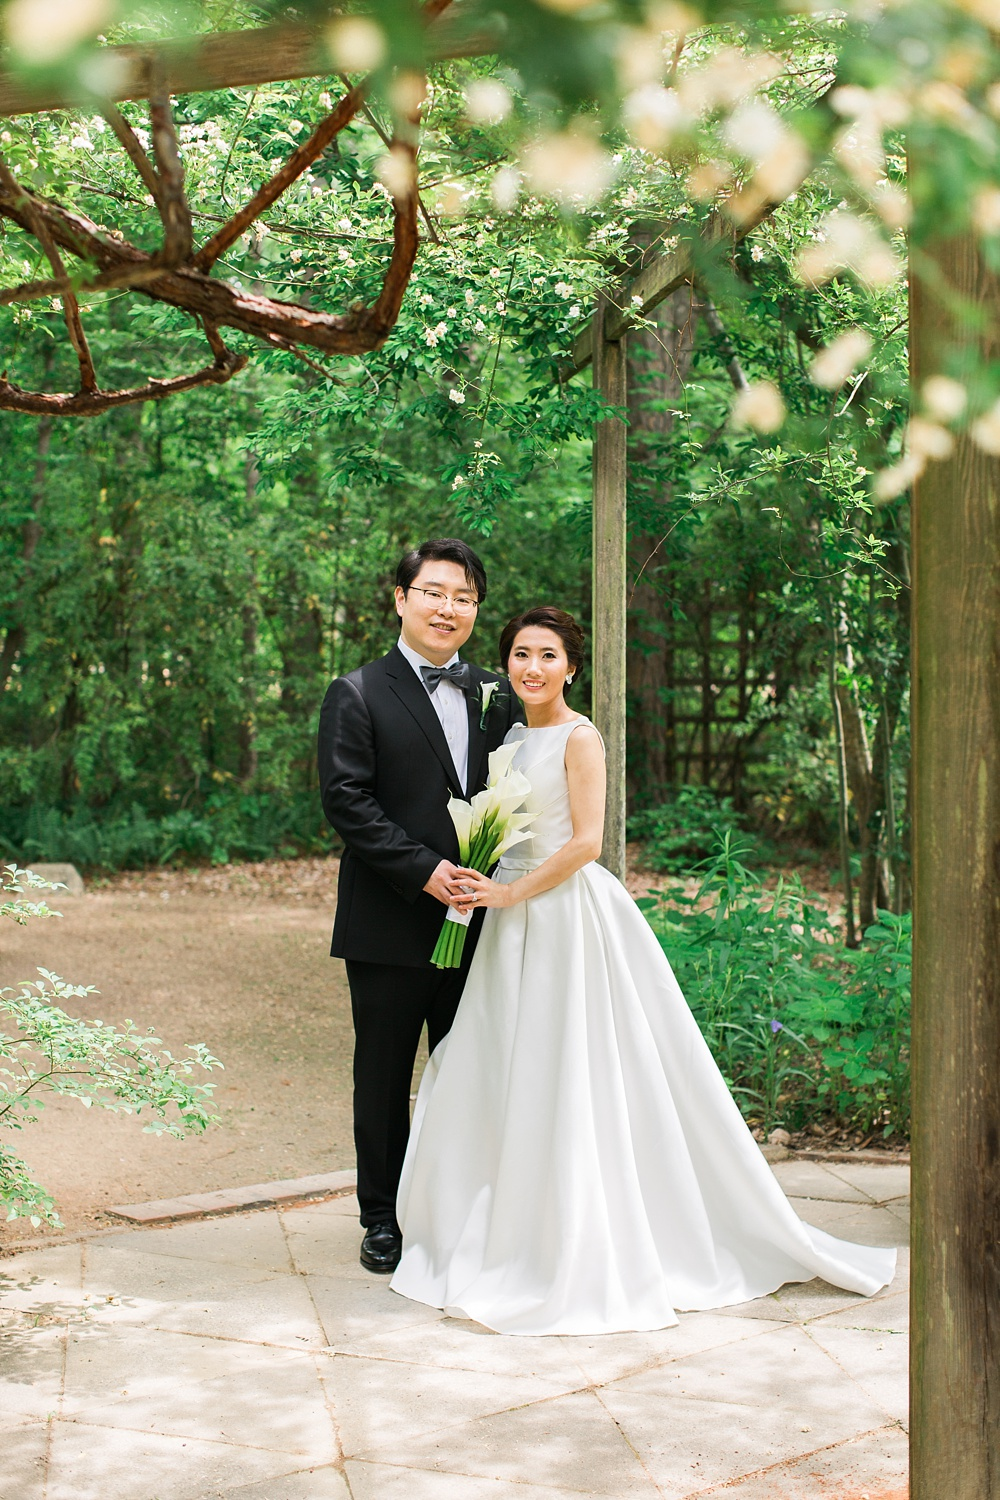 Bride + Groom under an arbor at the UNC botanical garden in Chapel Hill, NC